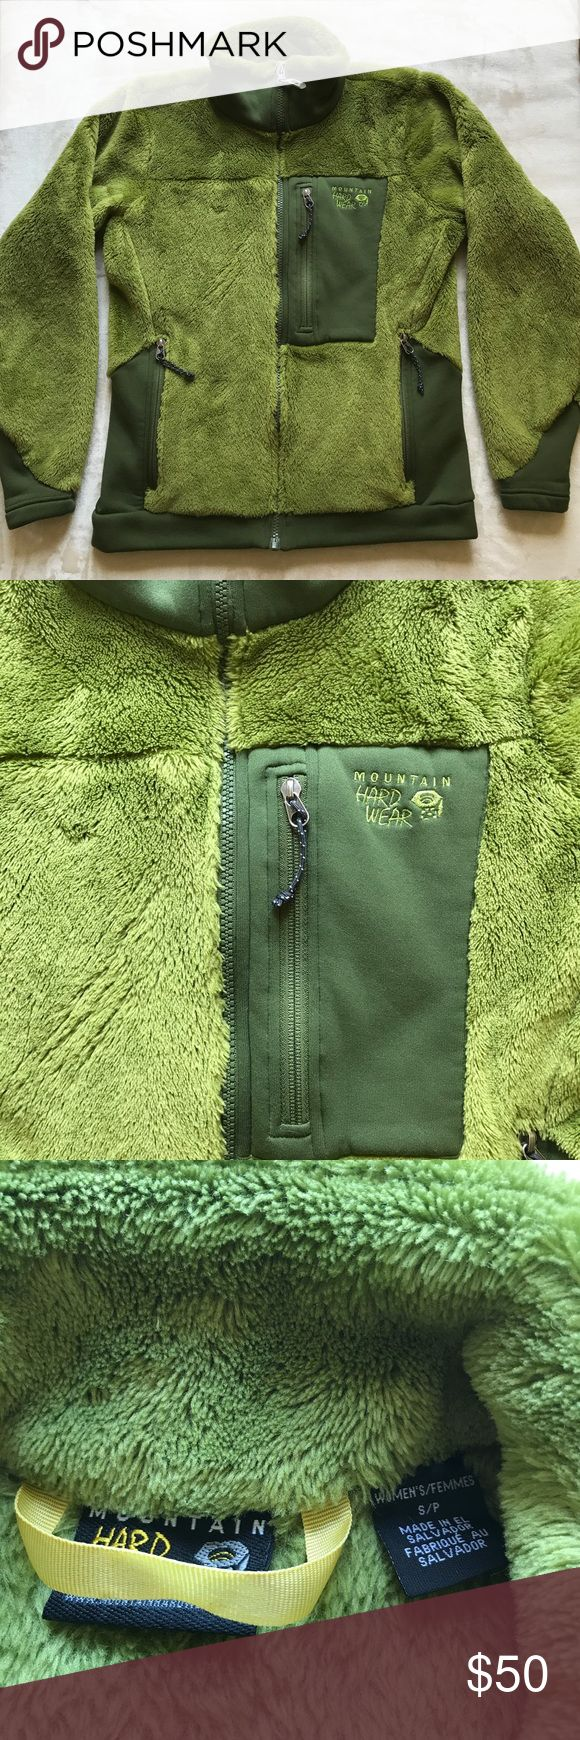 """💥 Mountain Hardwear Women's Monkey Jacket 💥 Excellent used condition. Mountain Hardwear monkey jacket in Green. Size small.  MicroClimate Zoning construction for built-in warmth, breathability and stretch. Extremely warm, extremely soft. Stretch hem and cuffs seal in warmth. Zip handwarmer pockets. Chest pocket for maps, snacks, and other goodies Apparel Fit Standard Weight: 15.2 oz. / 430 g. Center Back Length: 26 """" / 66 cm BodyPolartec ThermalPro Monkey Phur. Bundle to save!! Mountain…"""